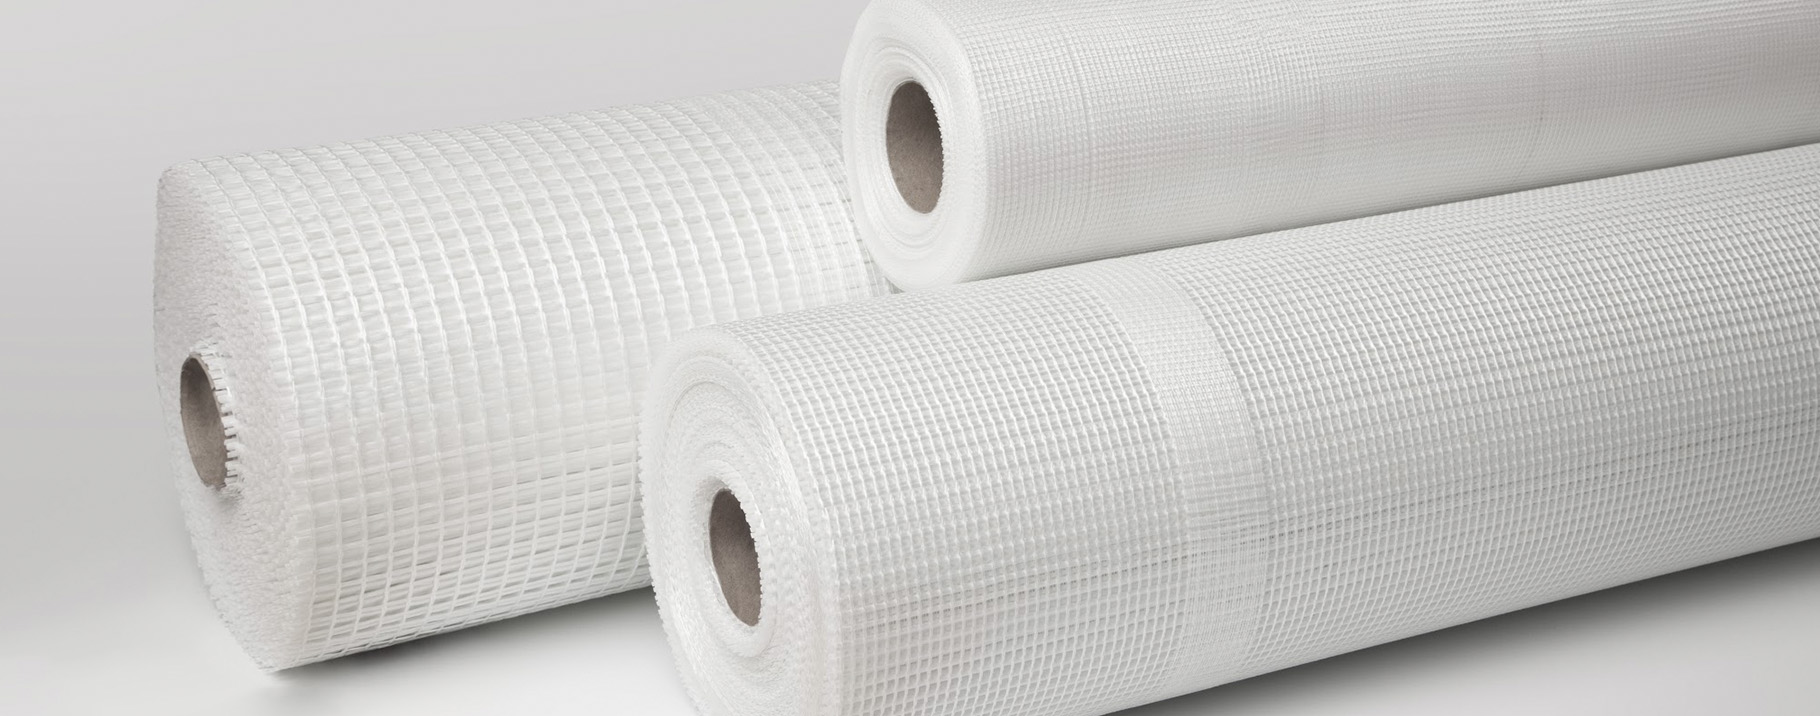 -Fiberglass mesh for prevention of cracks and microcracks